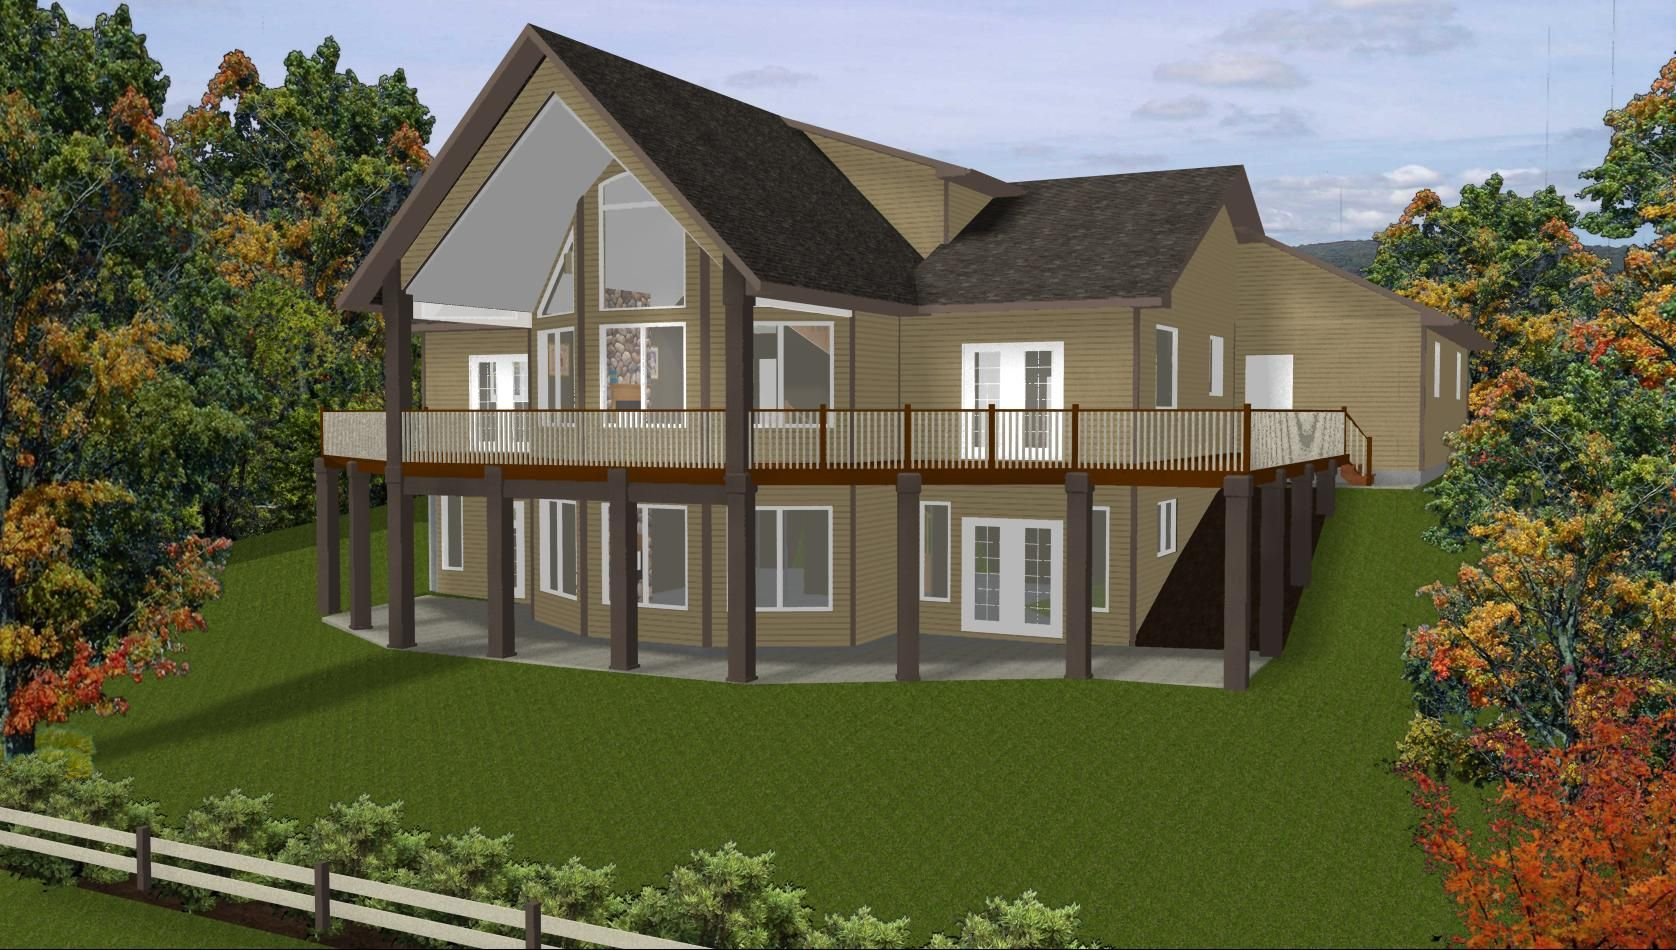 Image Detail For   Daylight Basement House Plans: Daylight Basement House  Plans   Walk . Nice Look